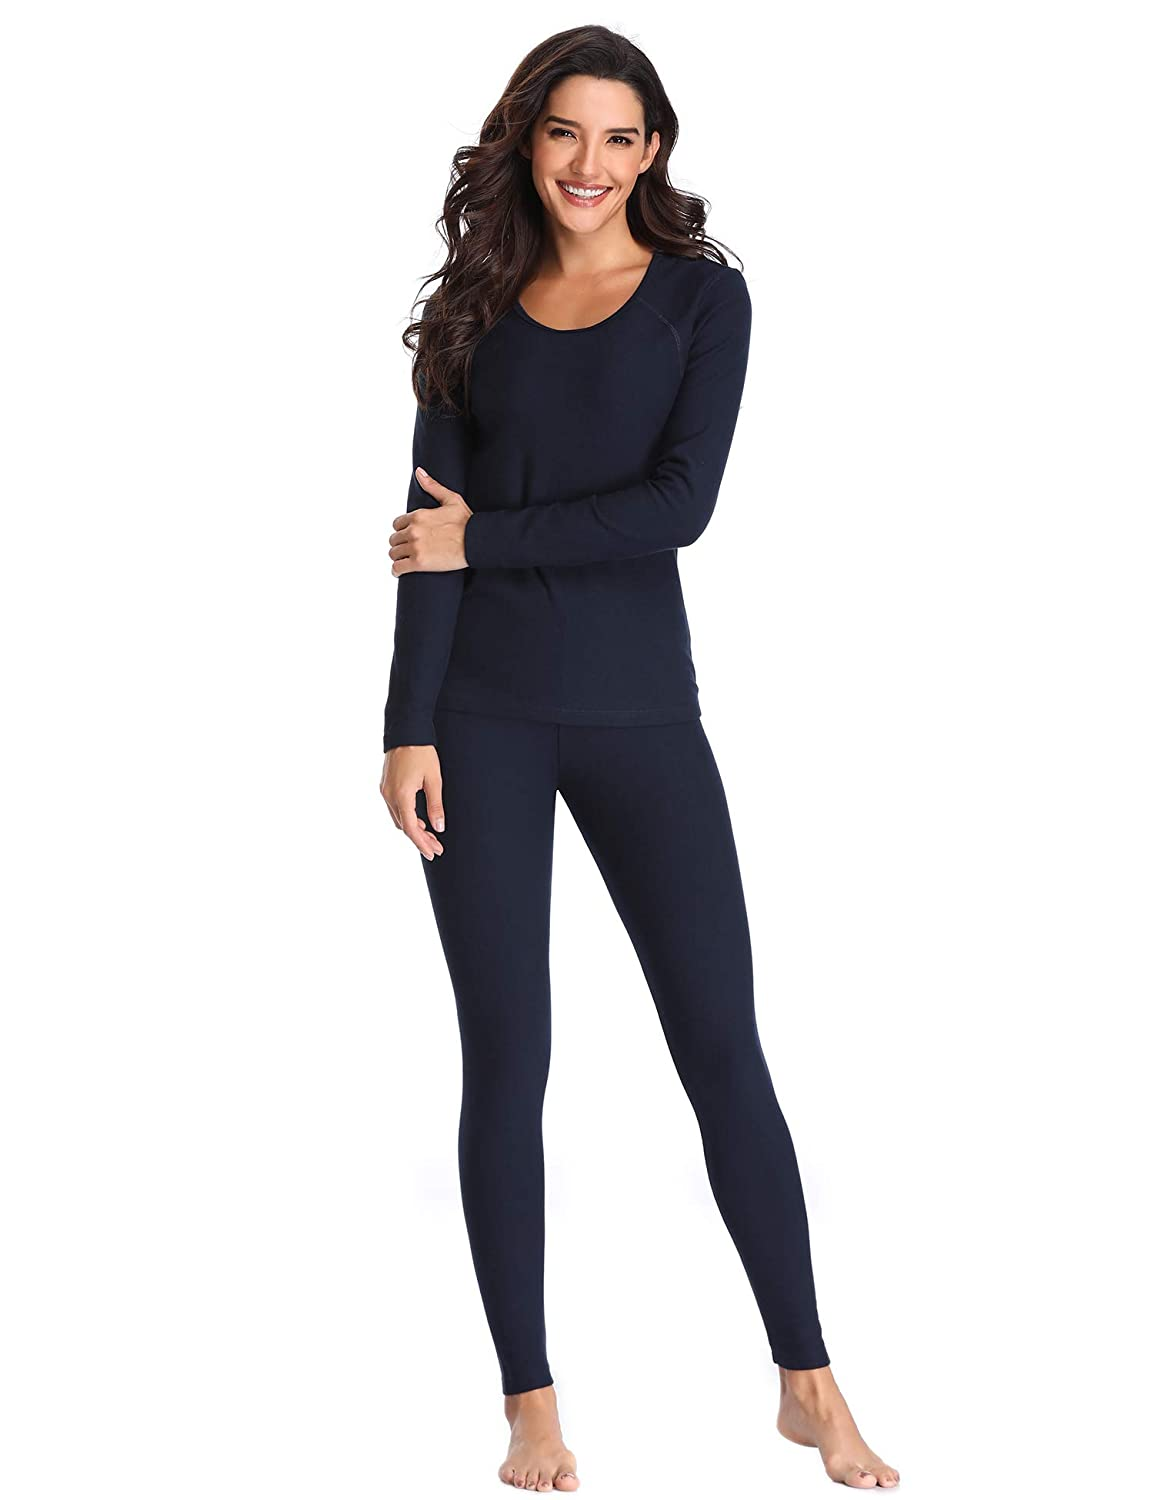 Lusofie Cotton Thermal Underwear Set for Women Long Johns Base Layer Thermals DEATYN1000797